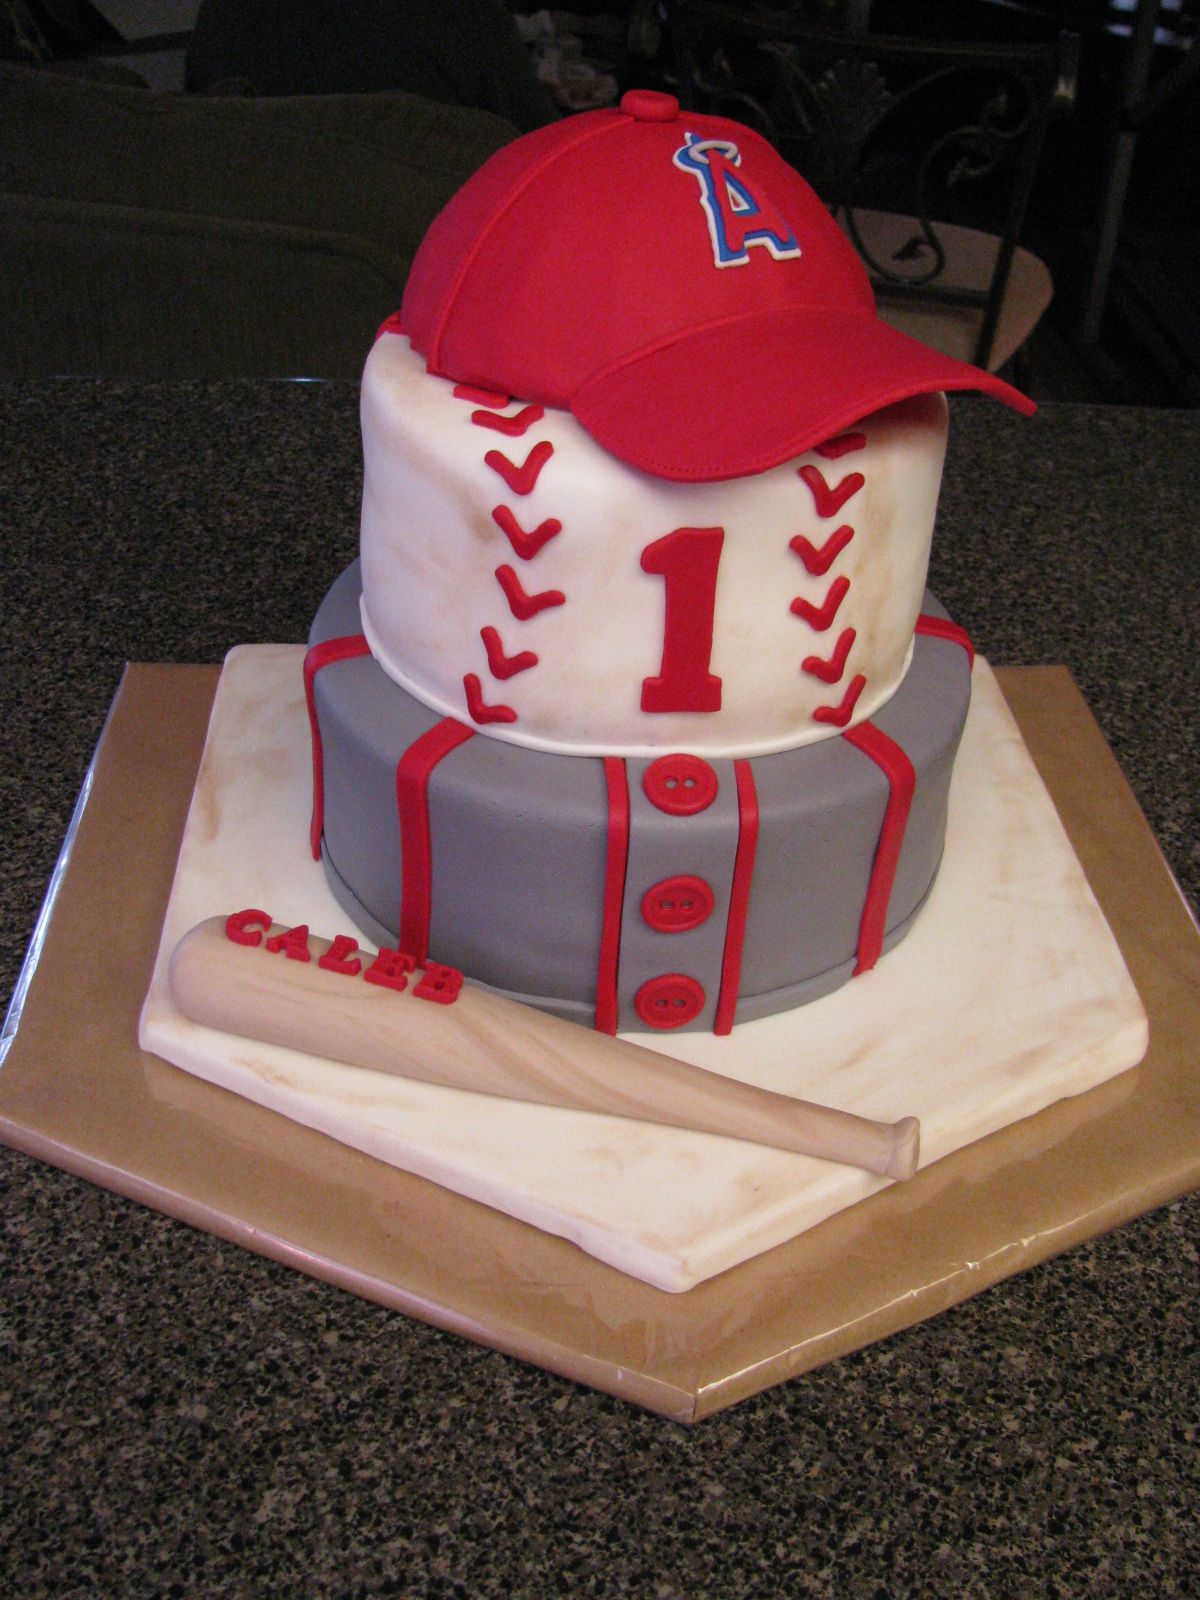 Astounding La Angels First Birthday Cake I Want To Give A Big Thanks To A Cc Funny Birthday Cards Online Elaedamsfinfo